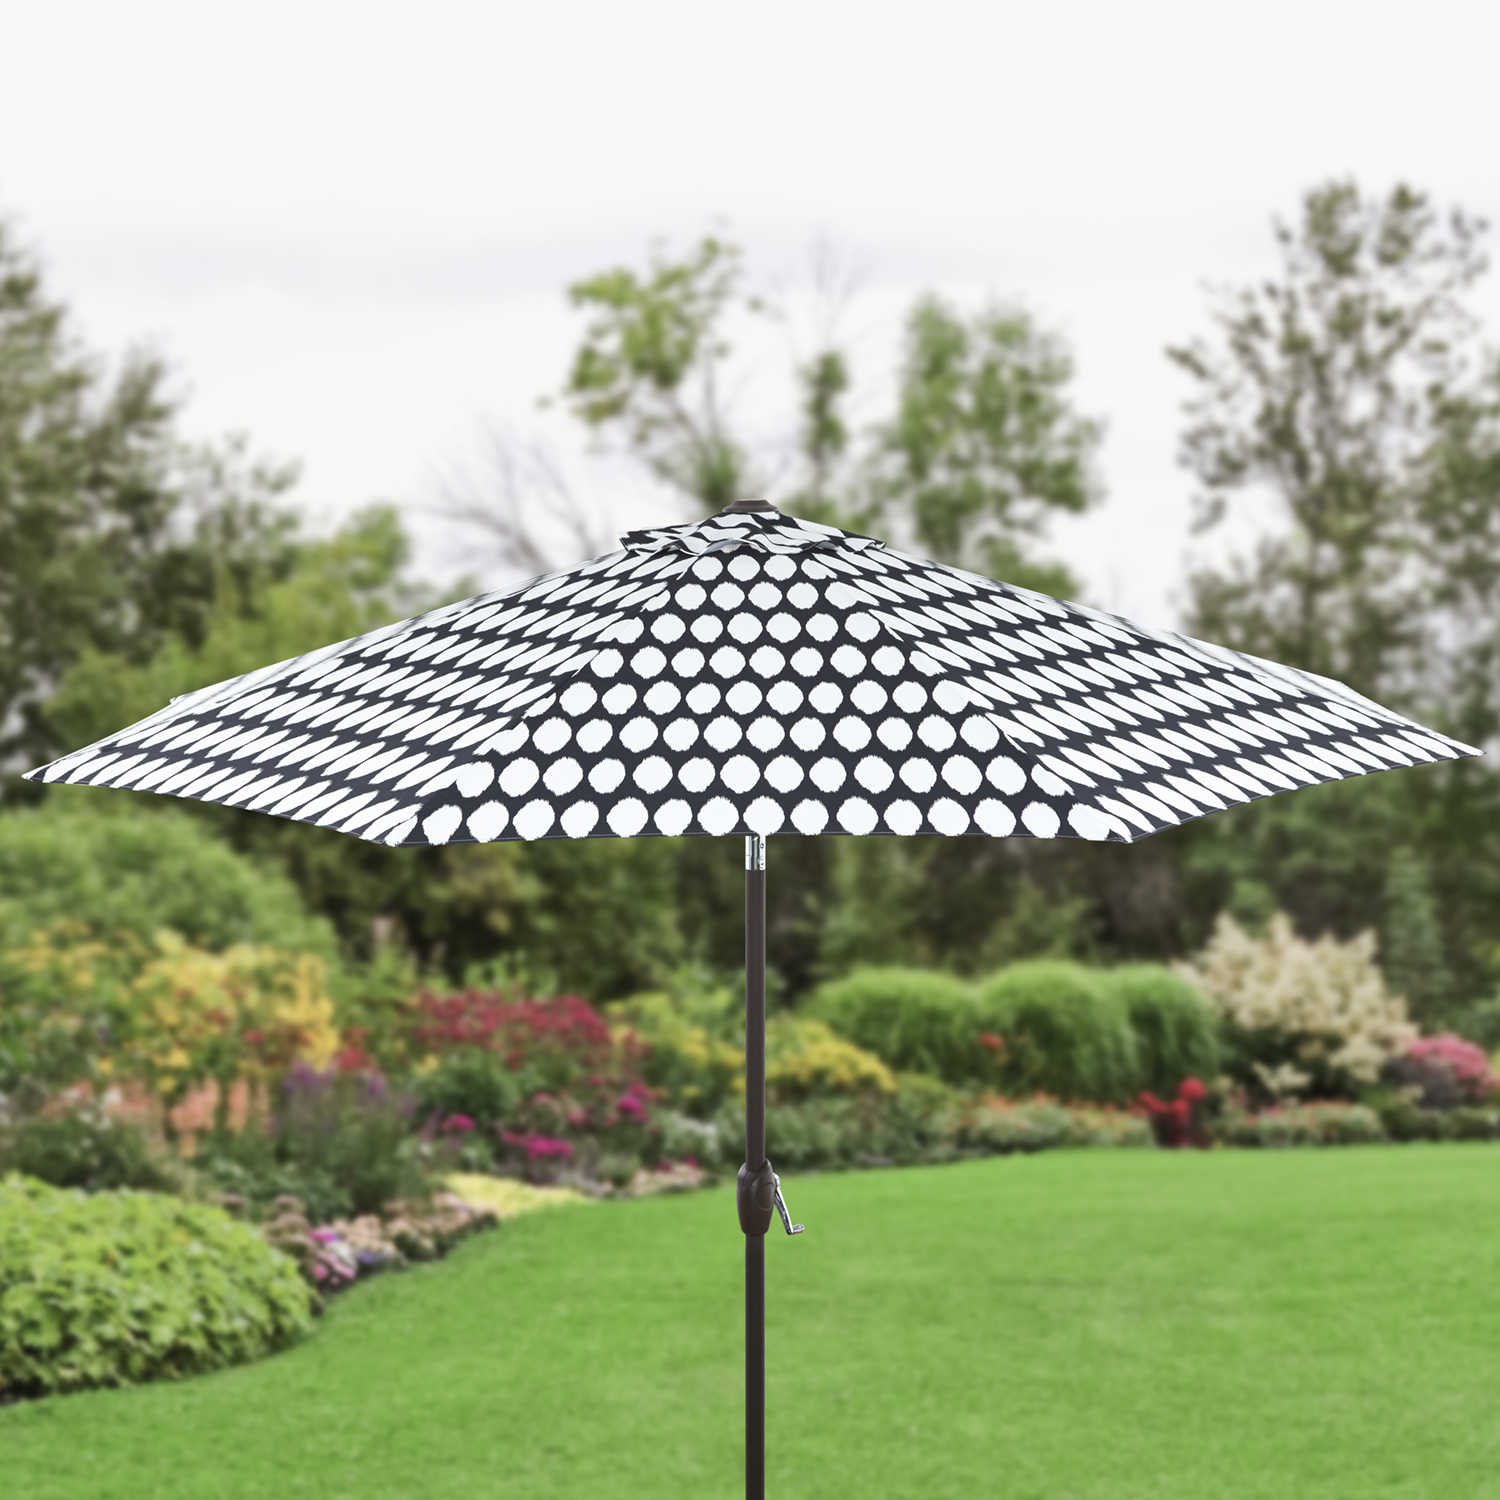 Better Homes and Gardens 9' Printed Market Umbrella, Black and White by NINGBO EVERLUCK OUTDOOR PRODUCTS MANUFACTING CO LTD